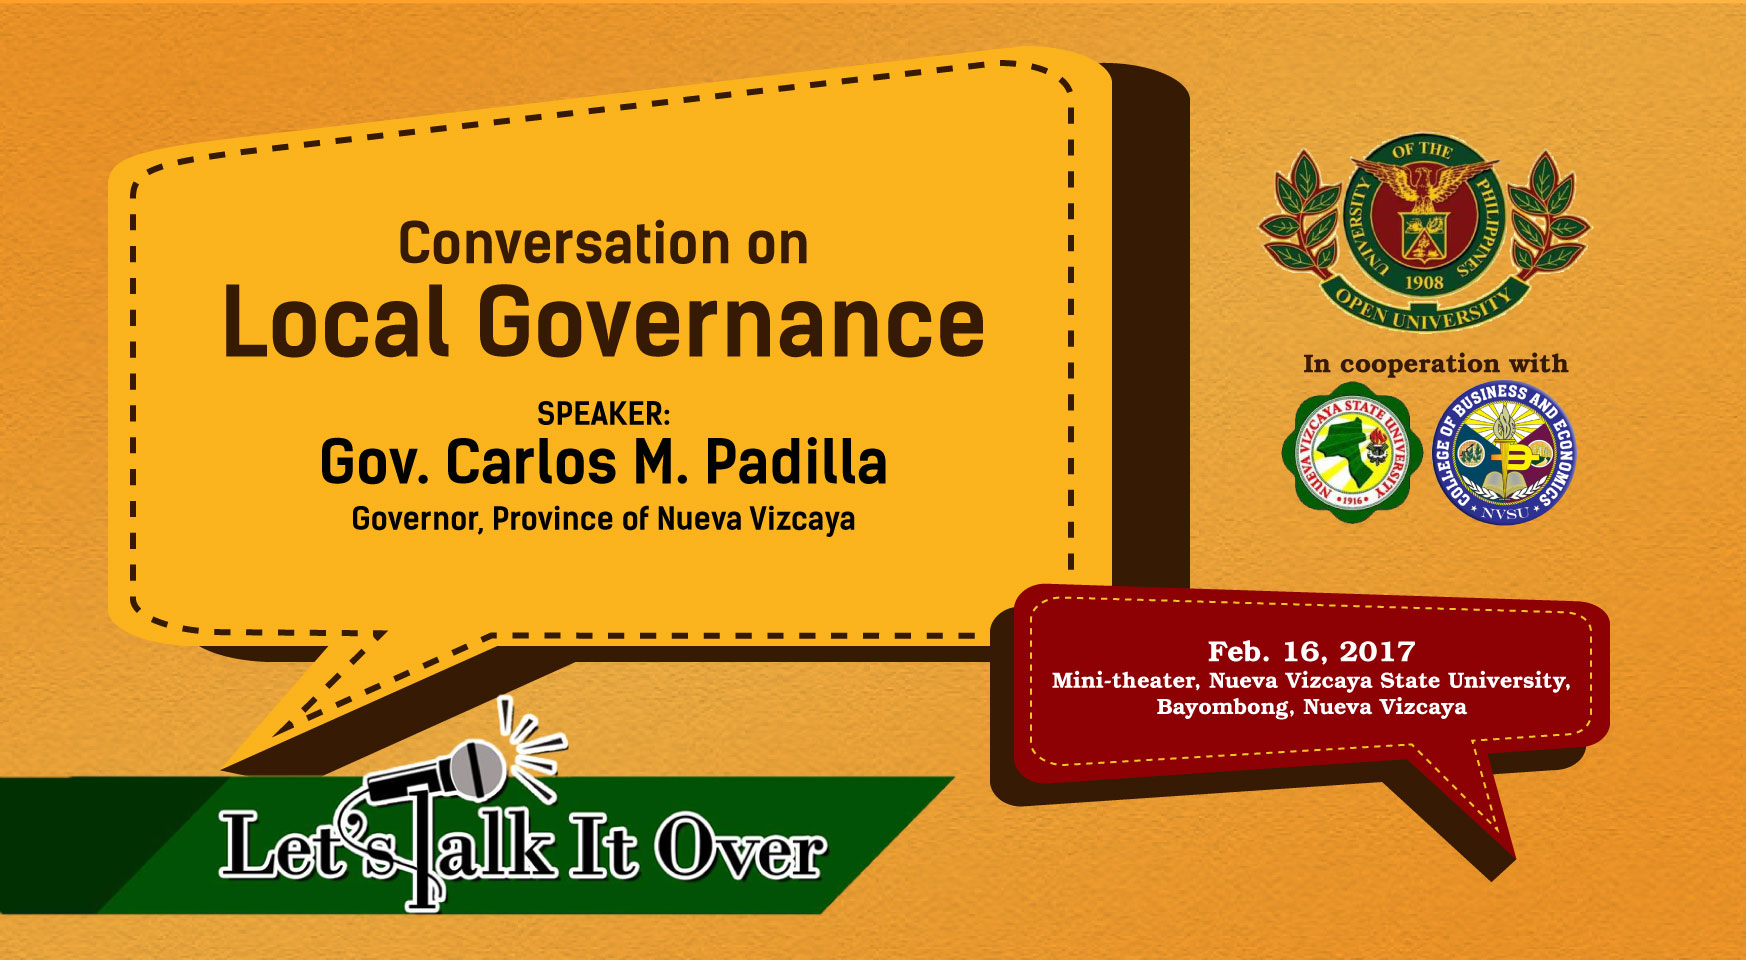 Conversation on Local Governance with Governor Carlos M. Padilla